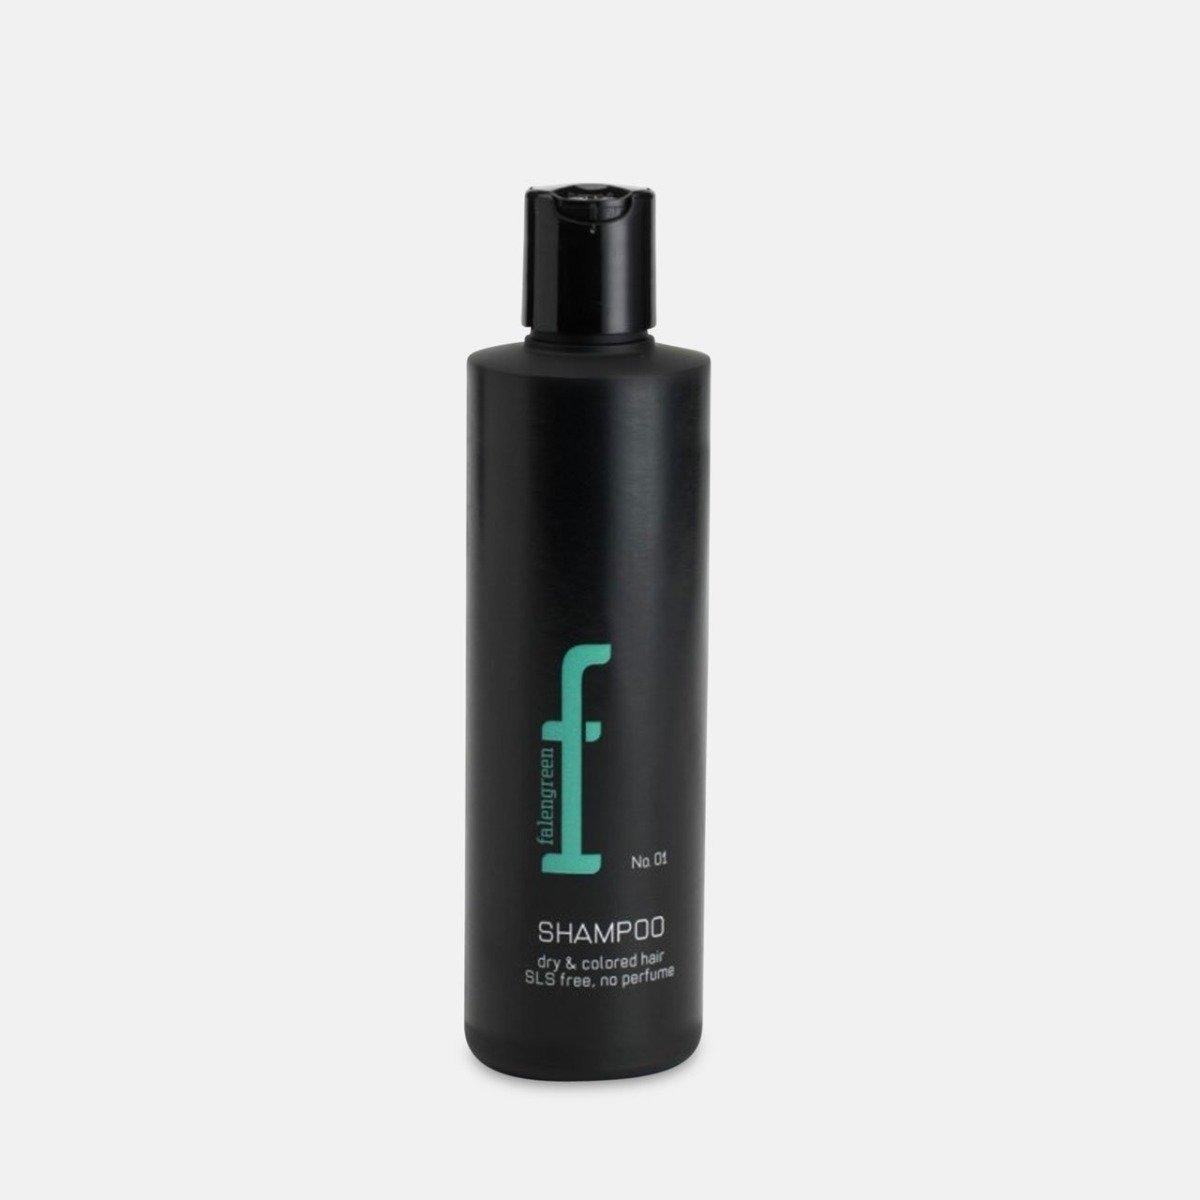 By Falengreen No.1 Shampoo - dry and colored hair - Nulallergi.dk